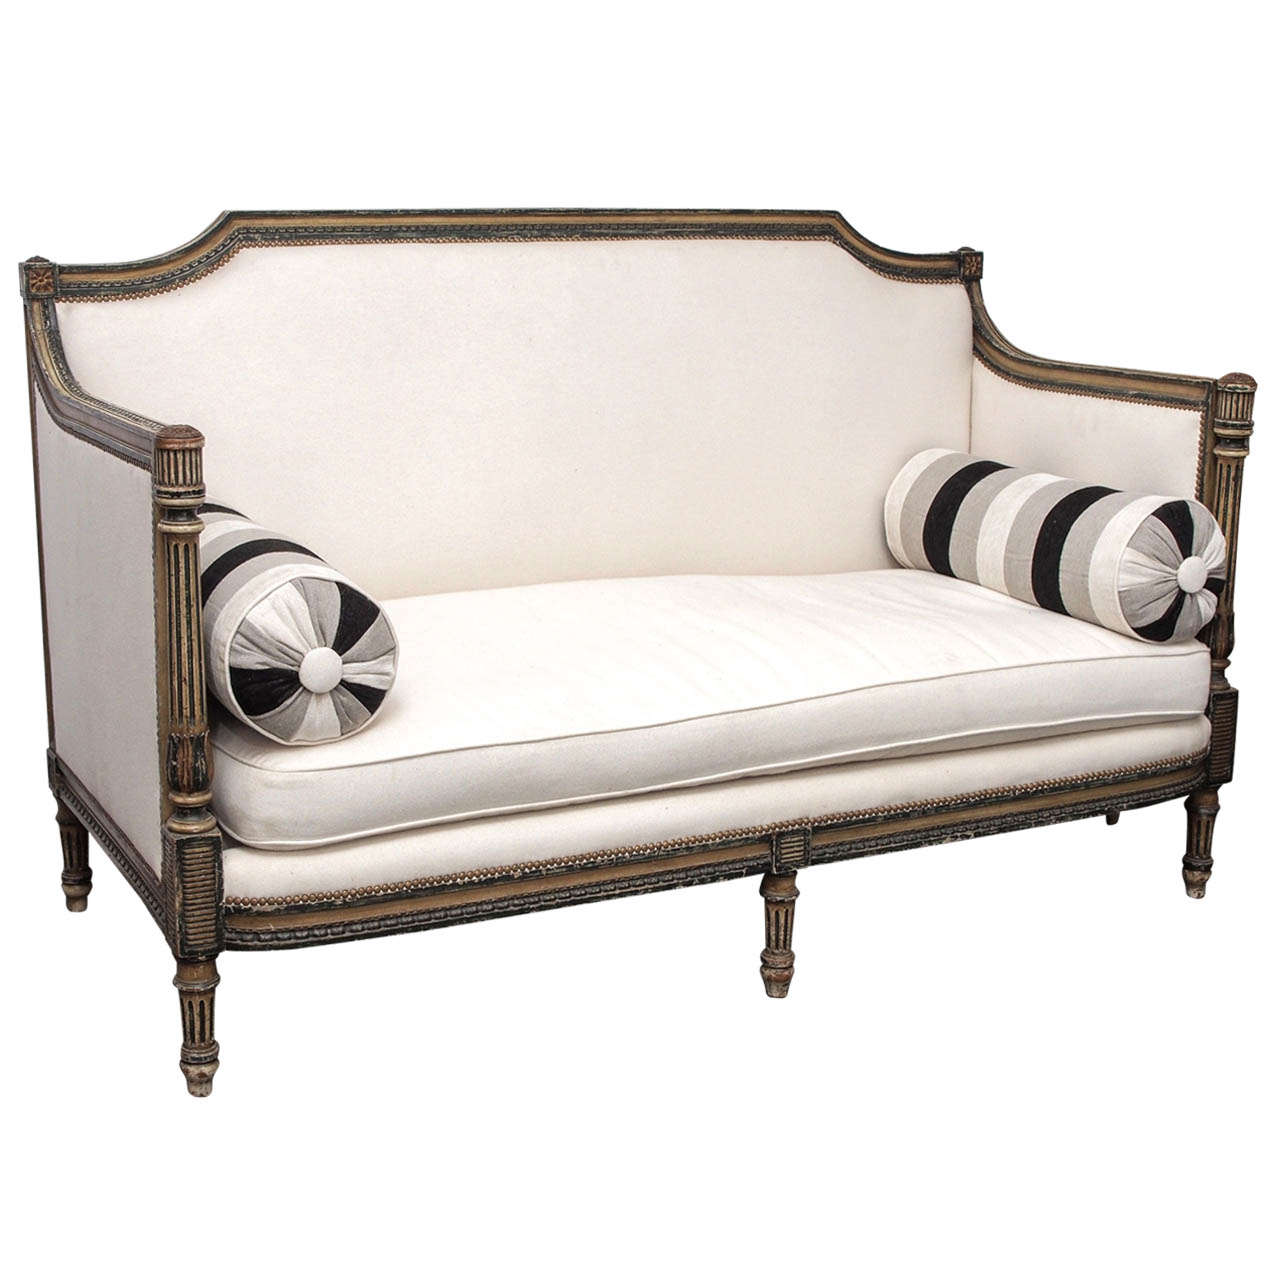 Louis XVI Style Carved Painted Wood And Upholstered Sofa At 1stdibs. Full resolution  photograph, nominally Width 1280 Height 1280 pixels, photograph with #7E614D.